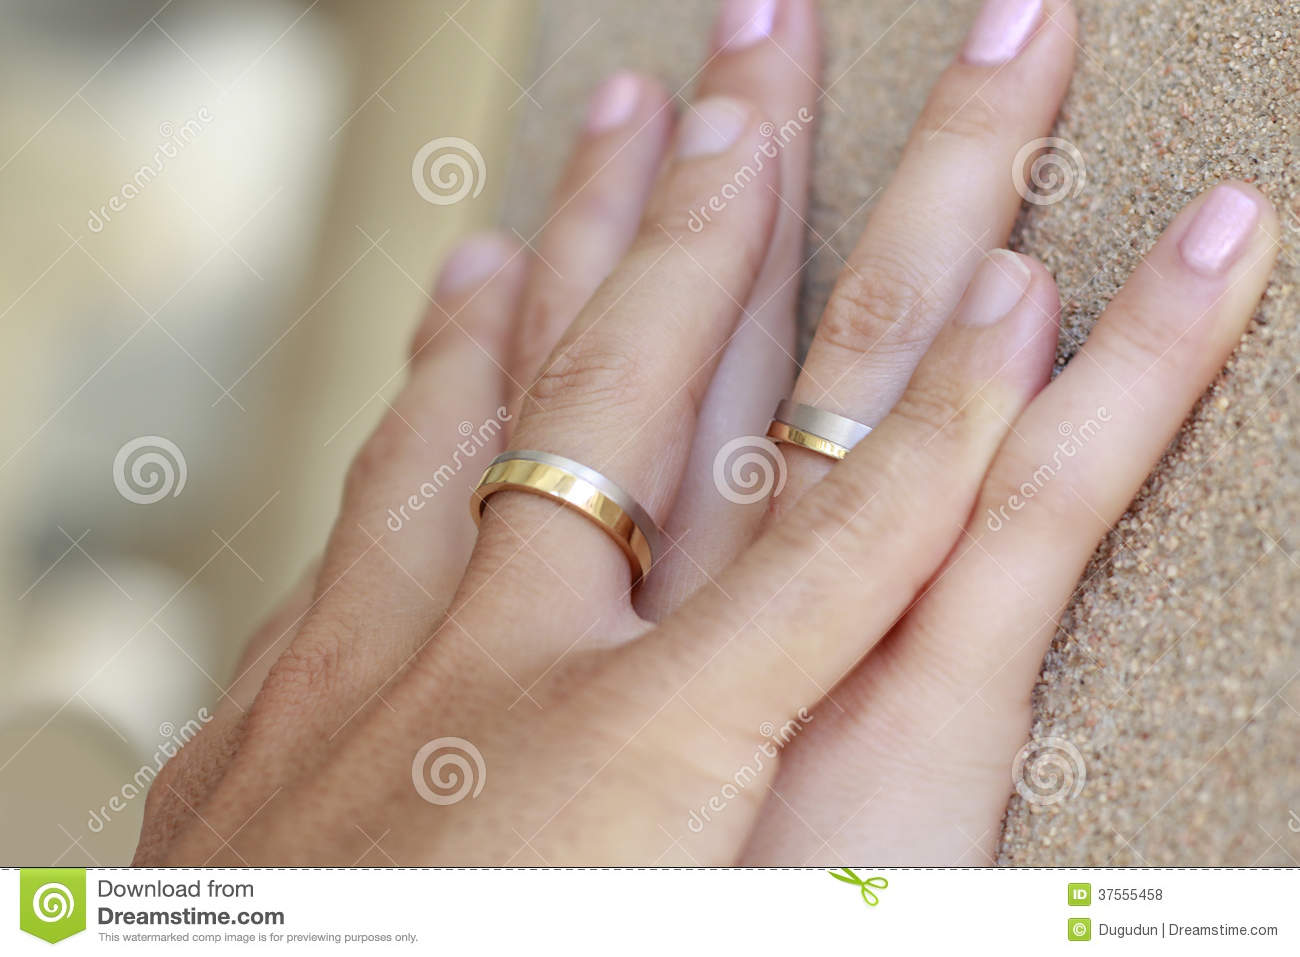 Wedding rings on hands stock photo. Image of hands, love - 37555458